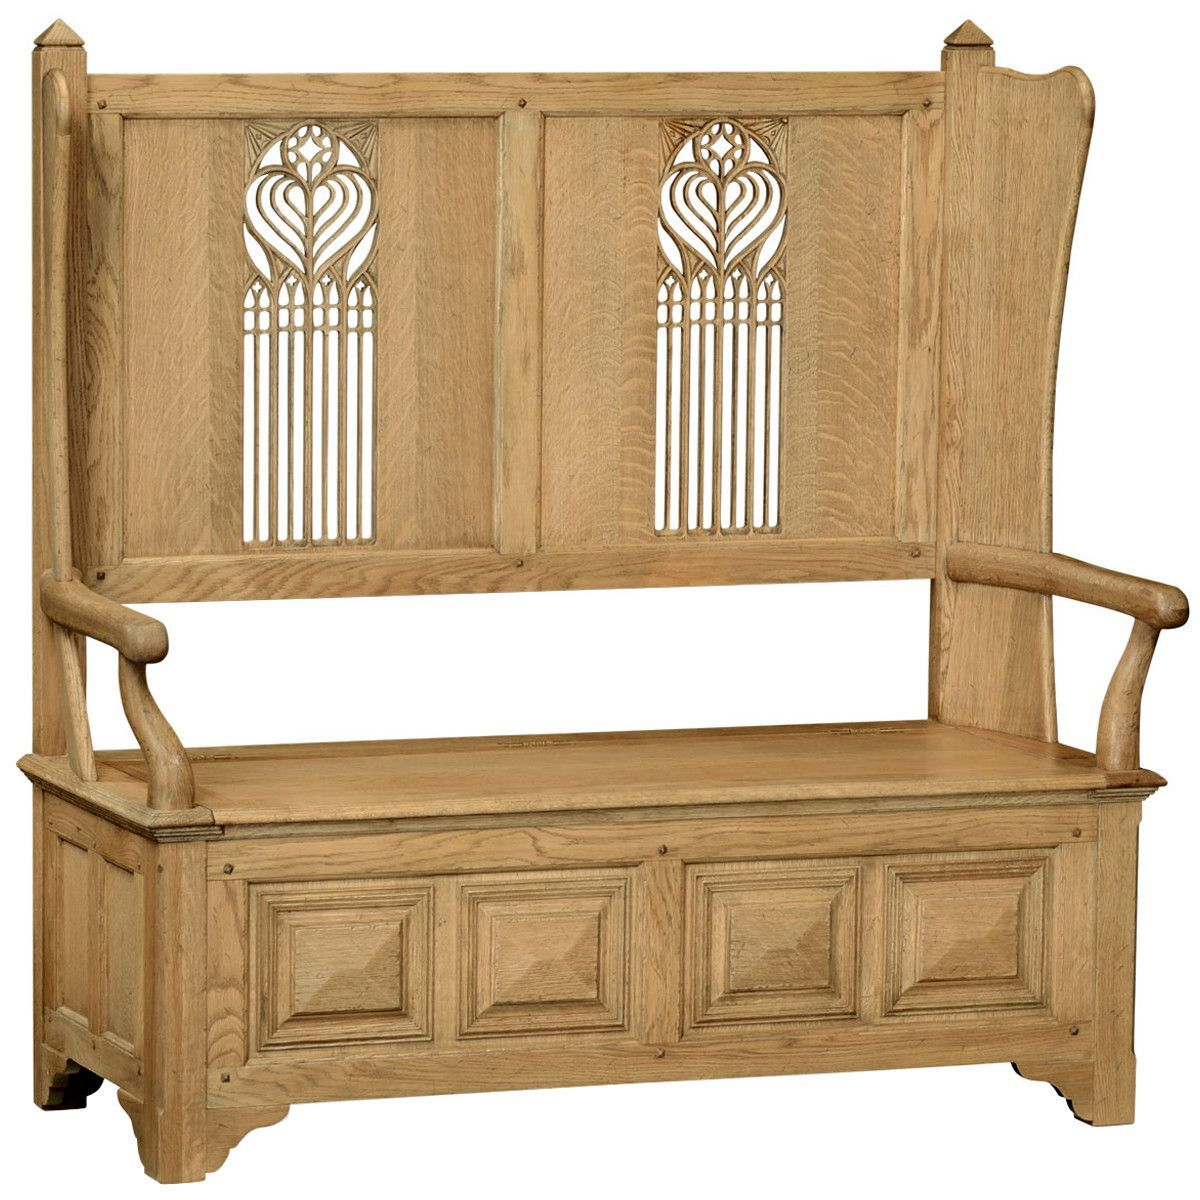 Mapple Meubles Anglais Jonathan Charles Gothic Style Settle With Storage Products